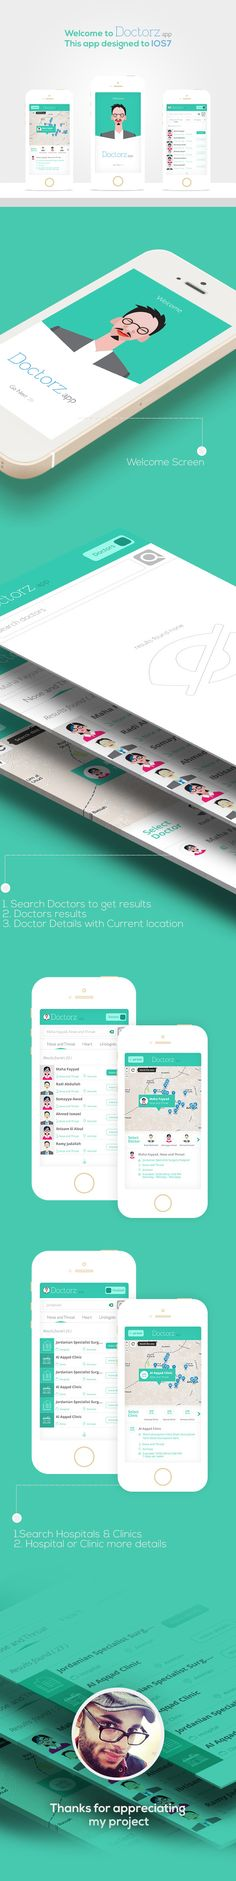 Doctorz Mobile app